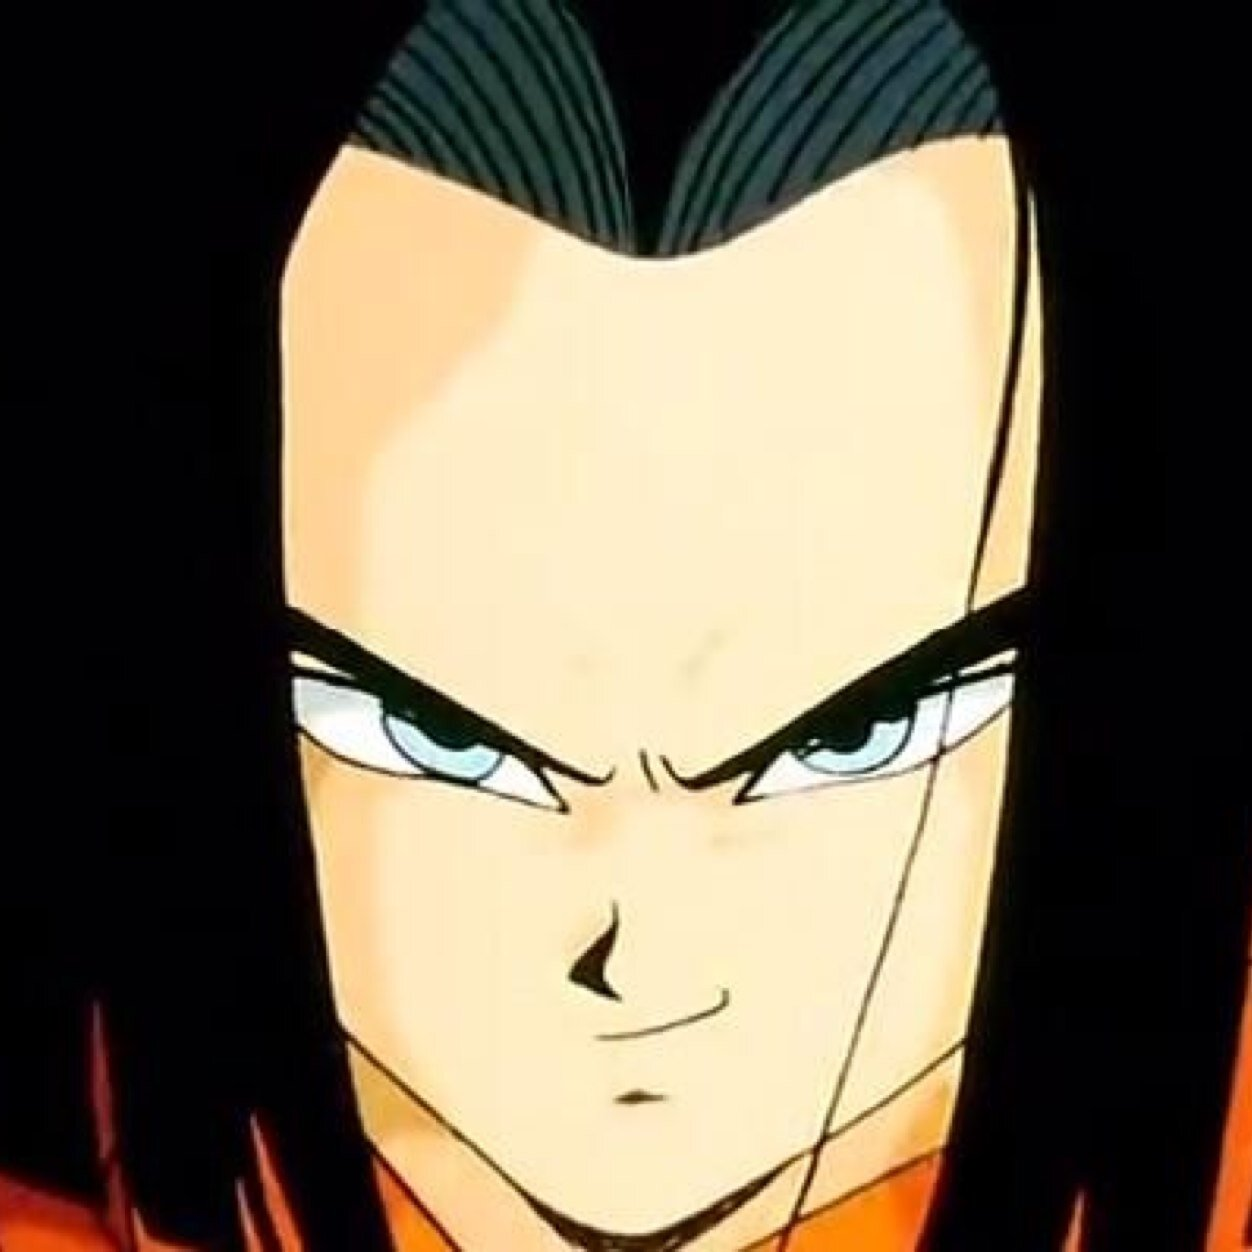 Android 17 On Twitter To All My New Followers I Am Hilarious And